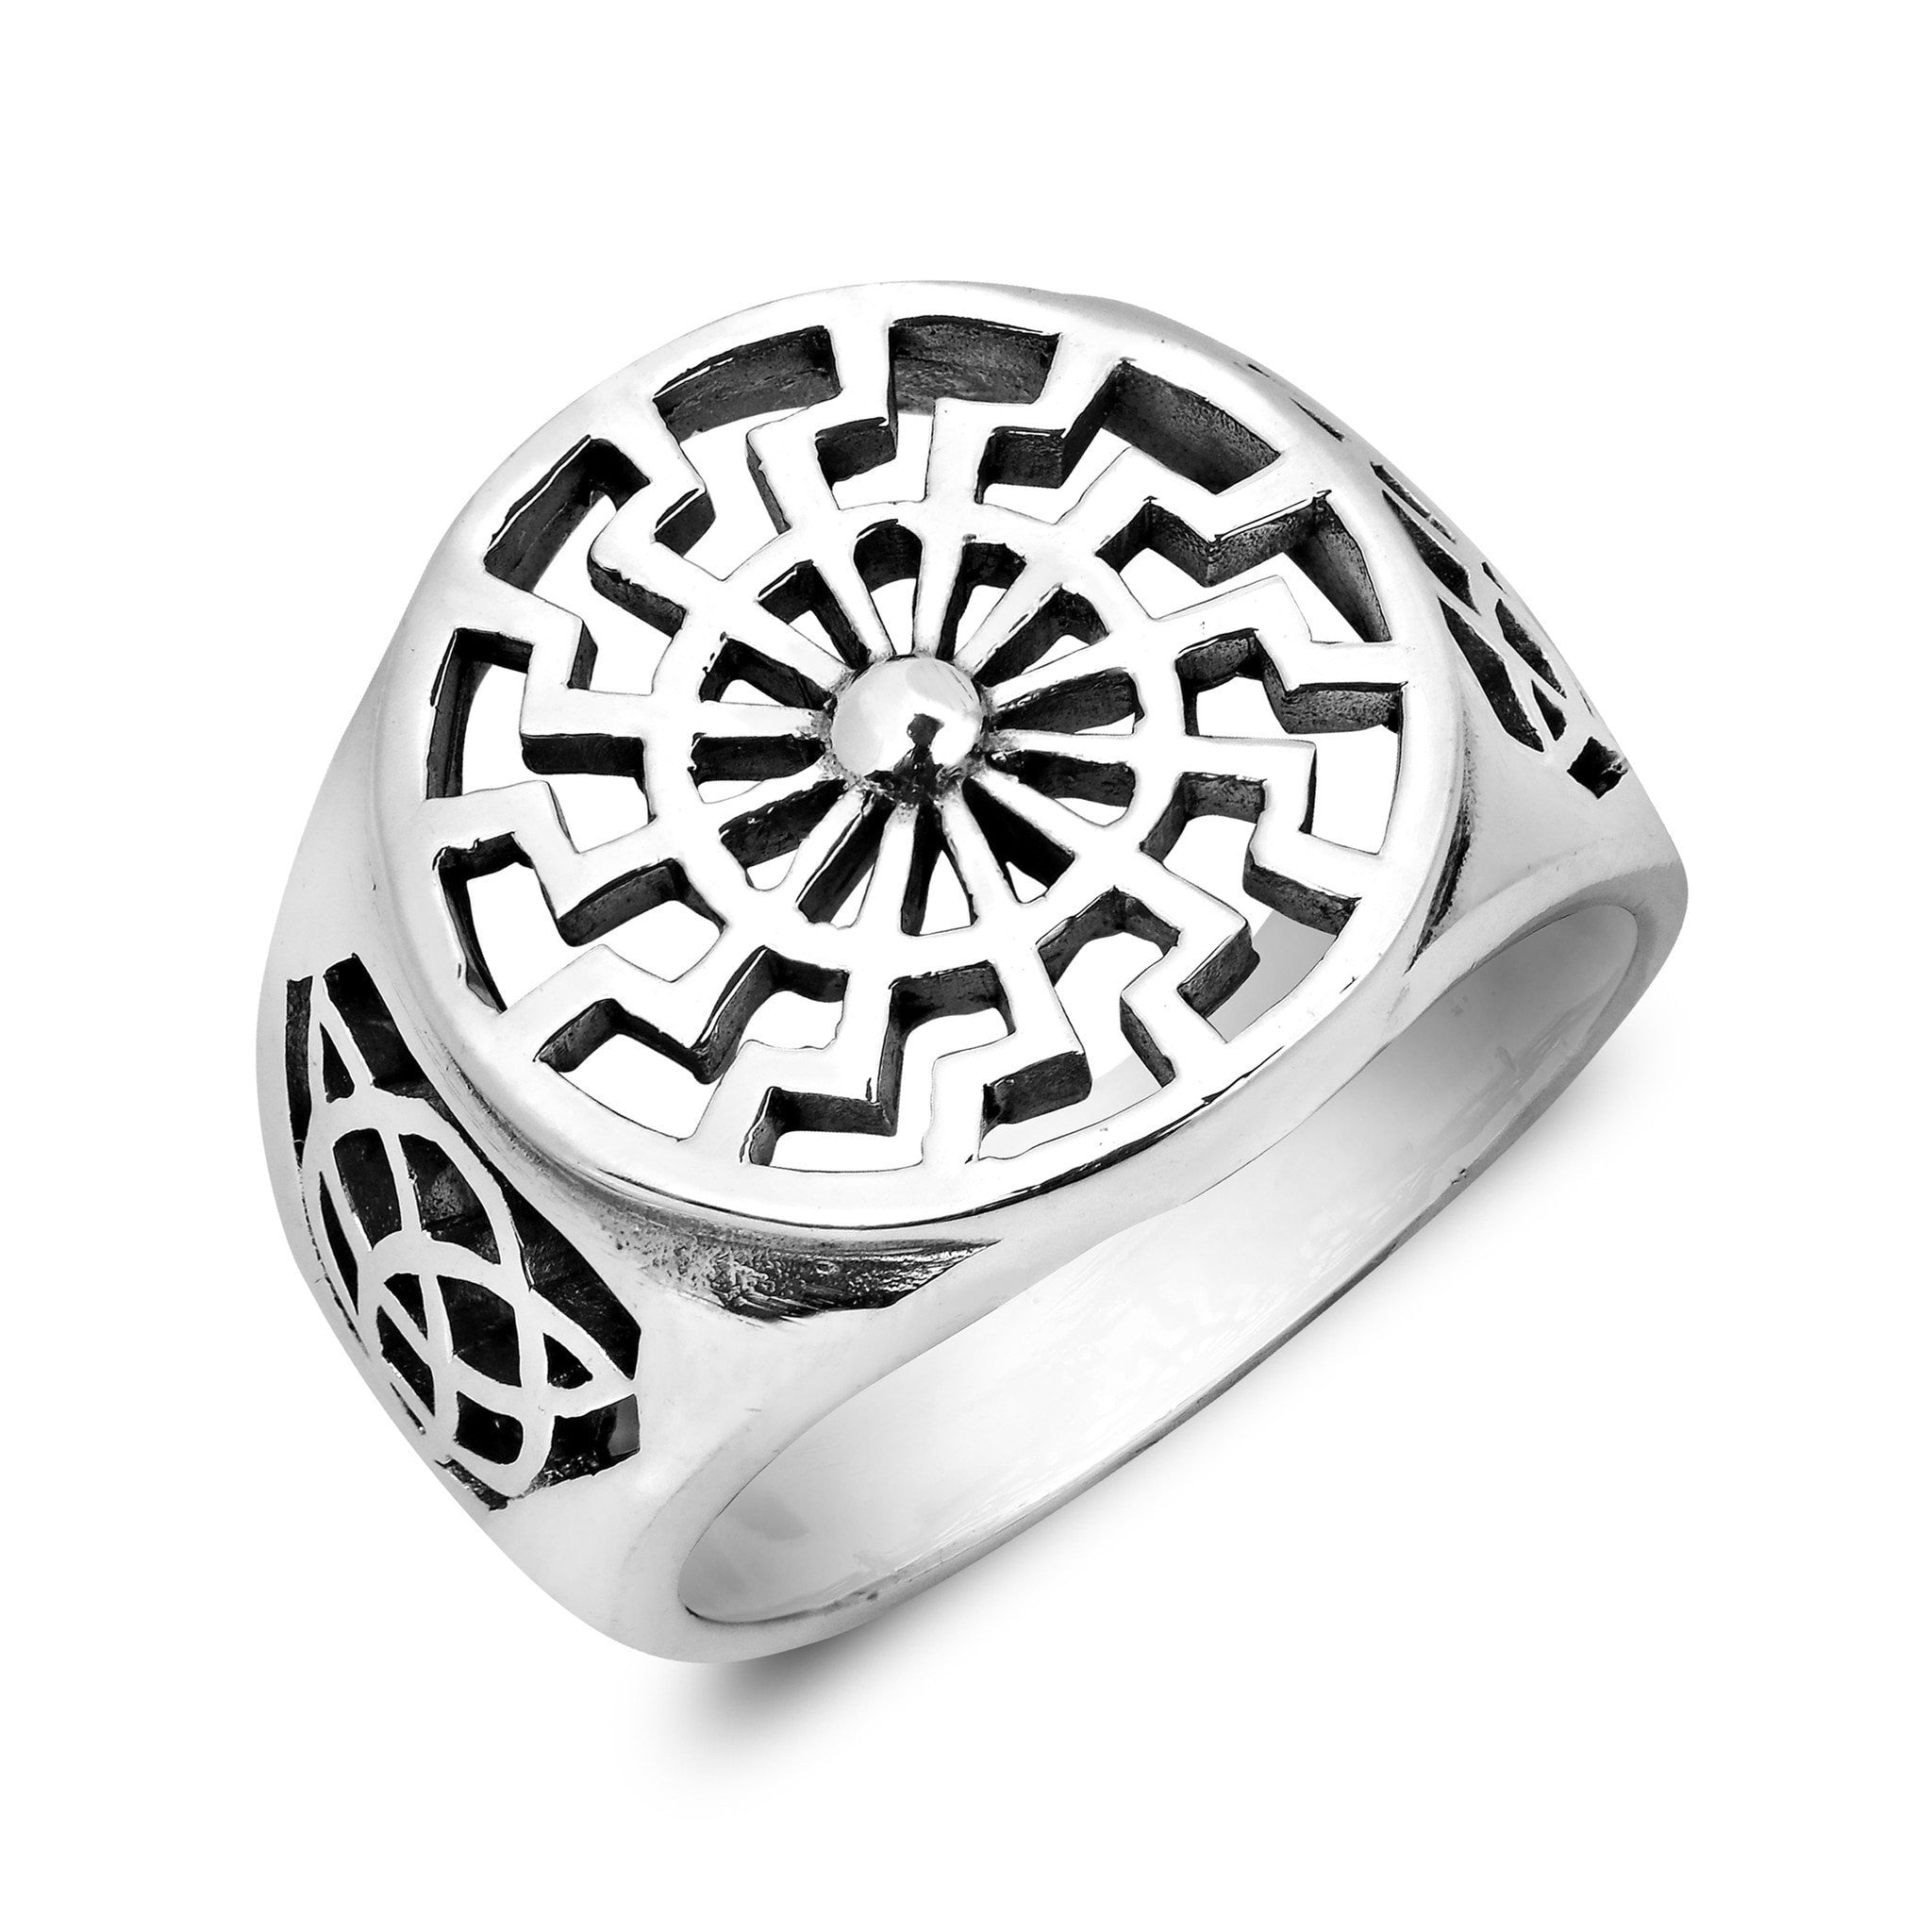 knot diamond shipping jewelry claddagh over orders trinity stainless free ring celtic steel product overstock on watches